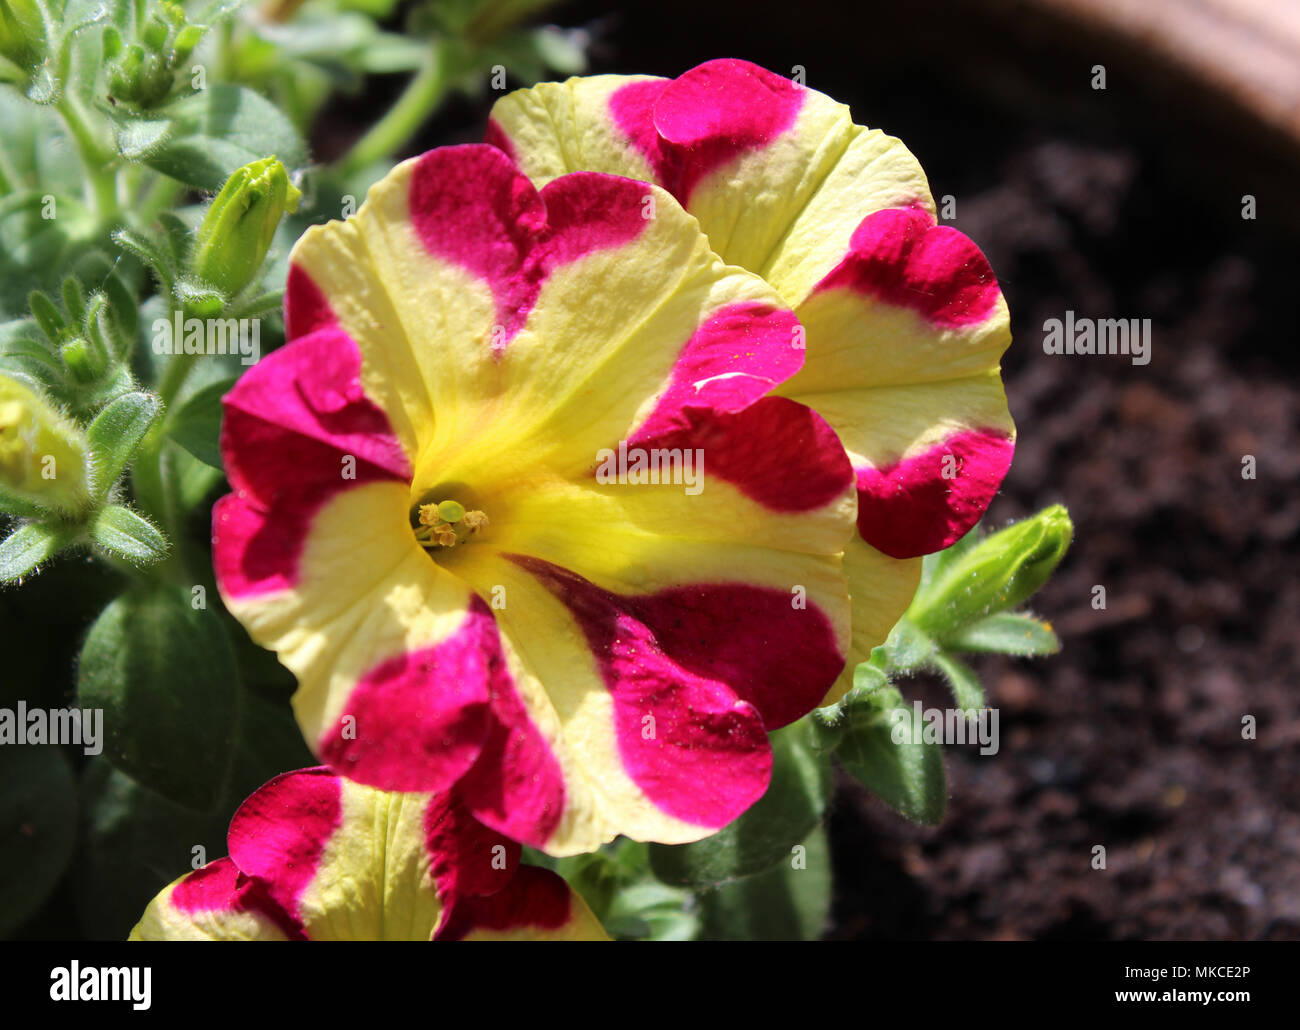 Beautiful and unusual pink and yellow striped petunia flowers in an beautiful and unusual pink and yellow striped petunia flowers in an outdoors setting with copy space izmirmasajfo